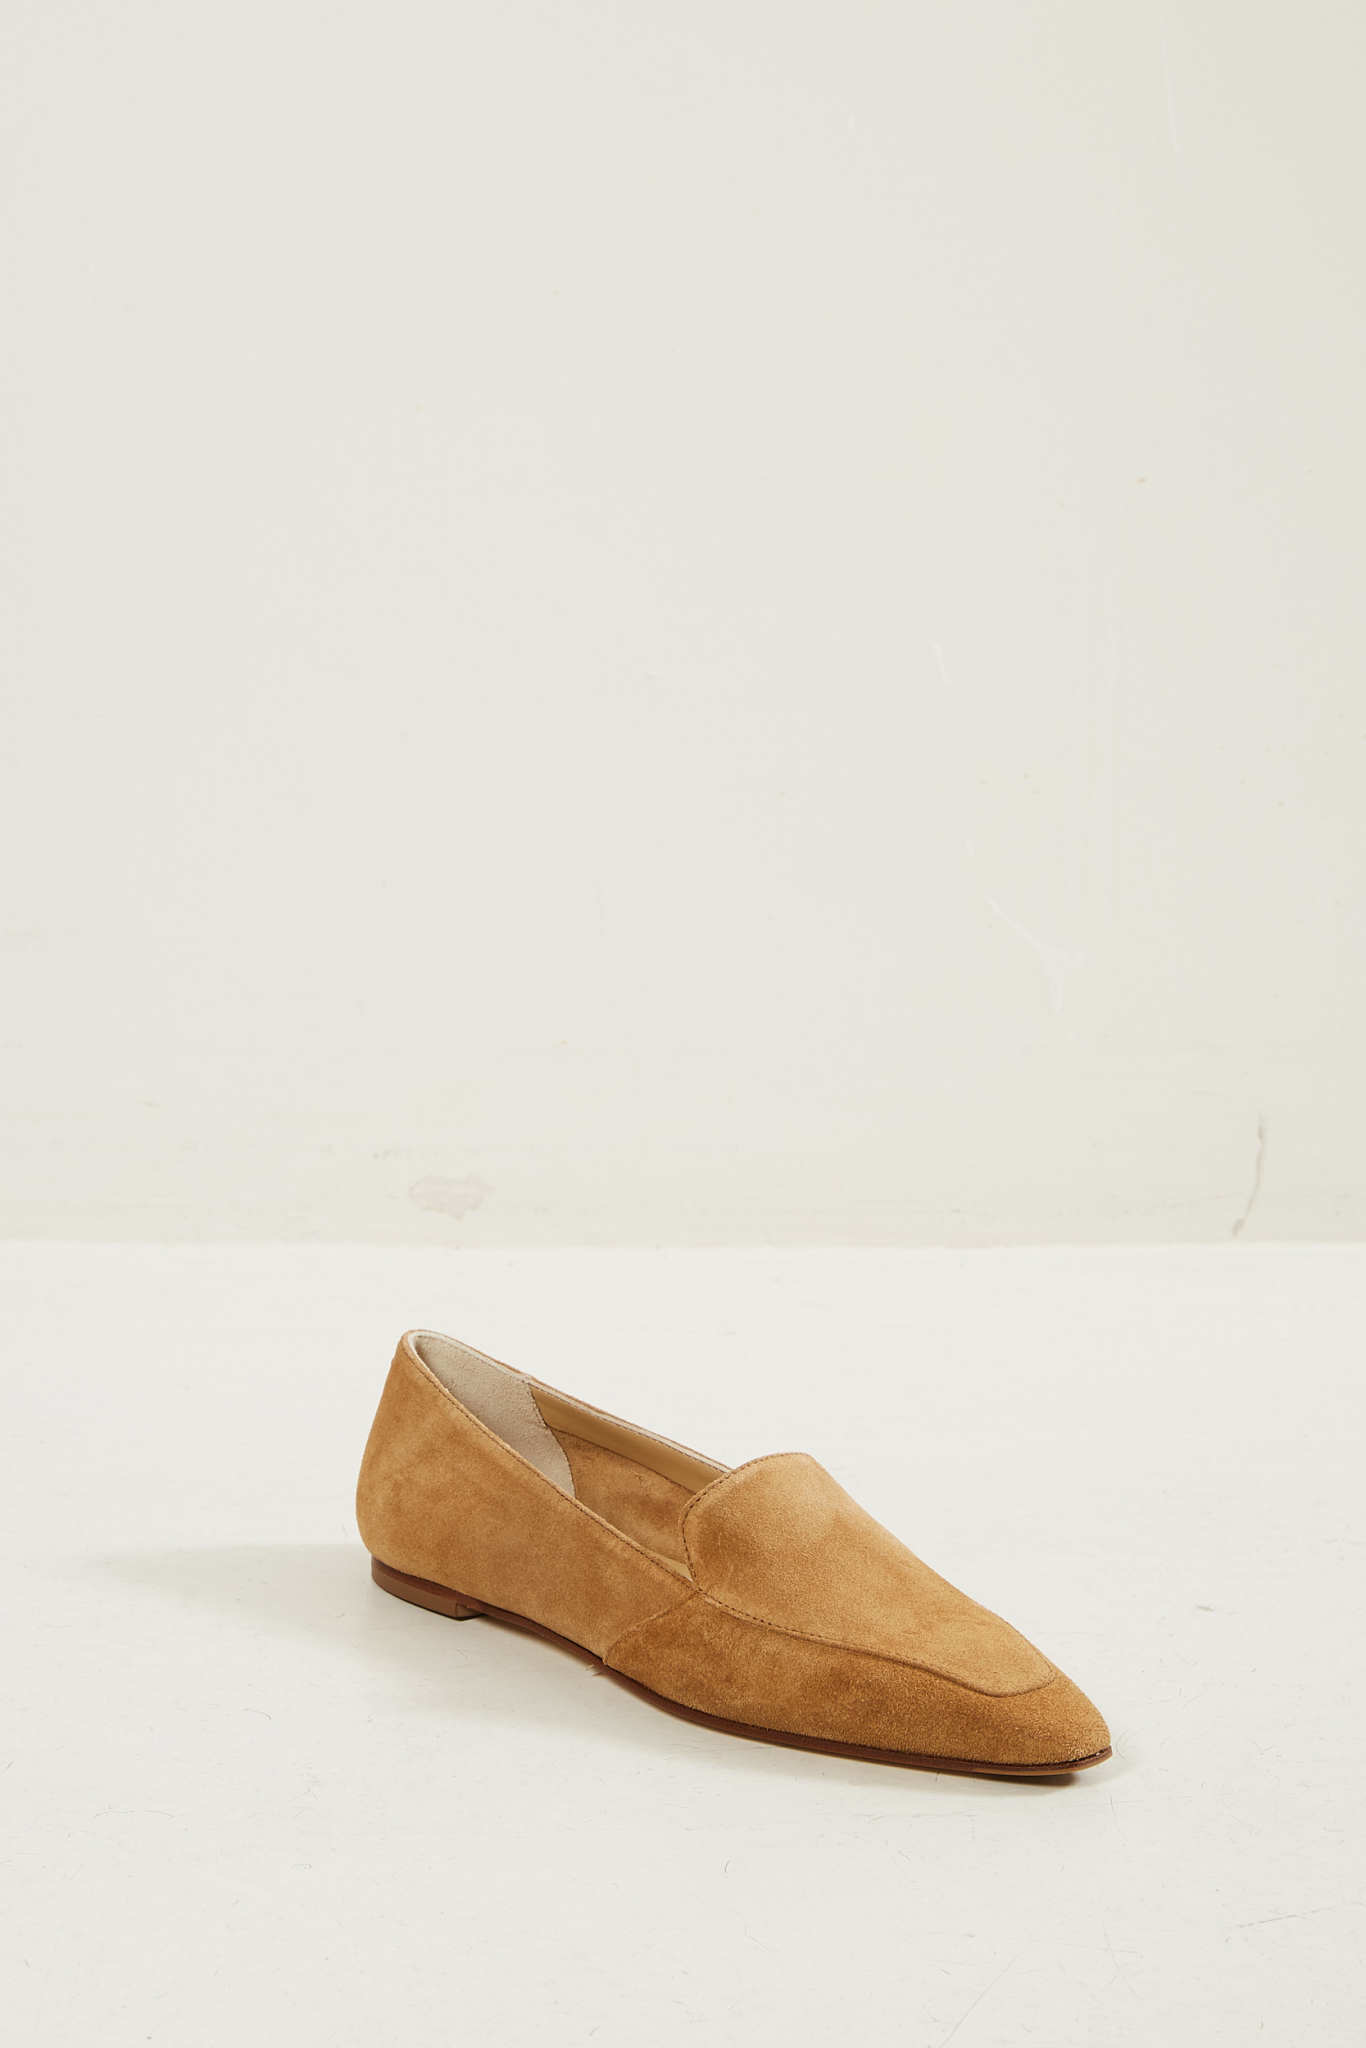 Aeyde Aurora suede leather fiesta loafers toscano